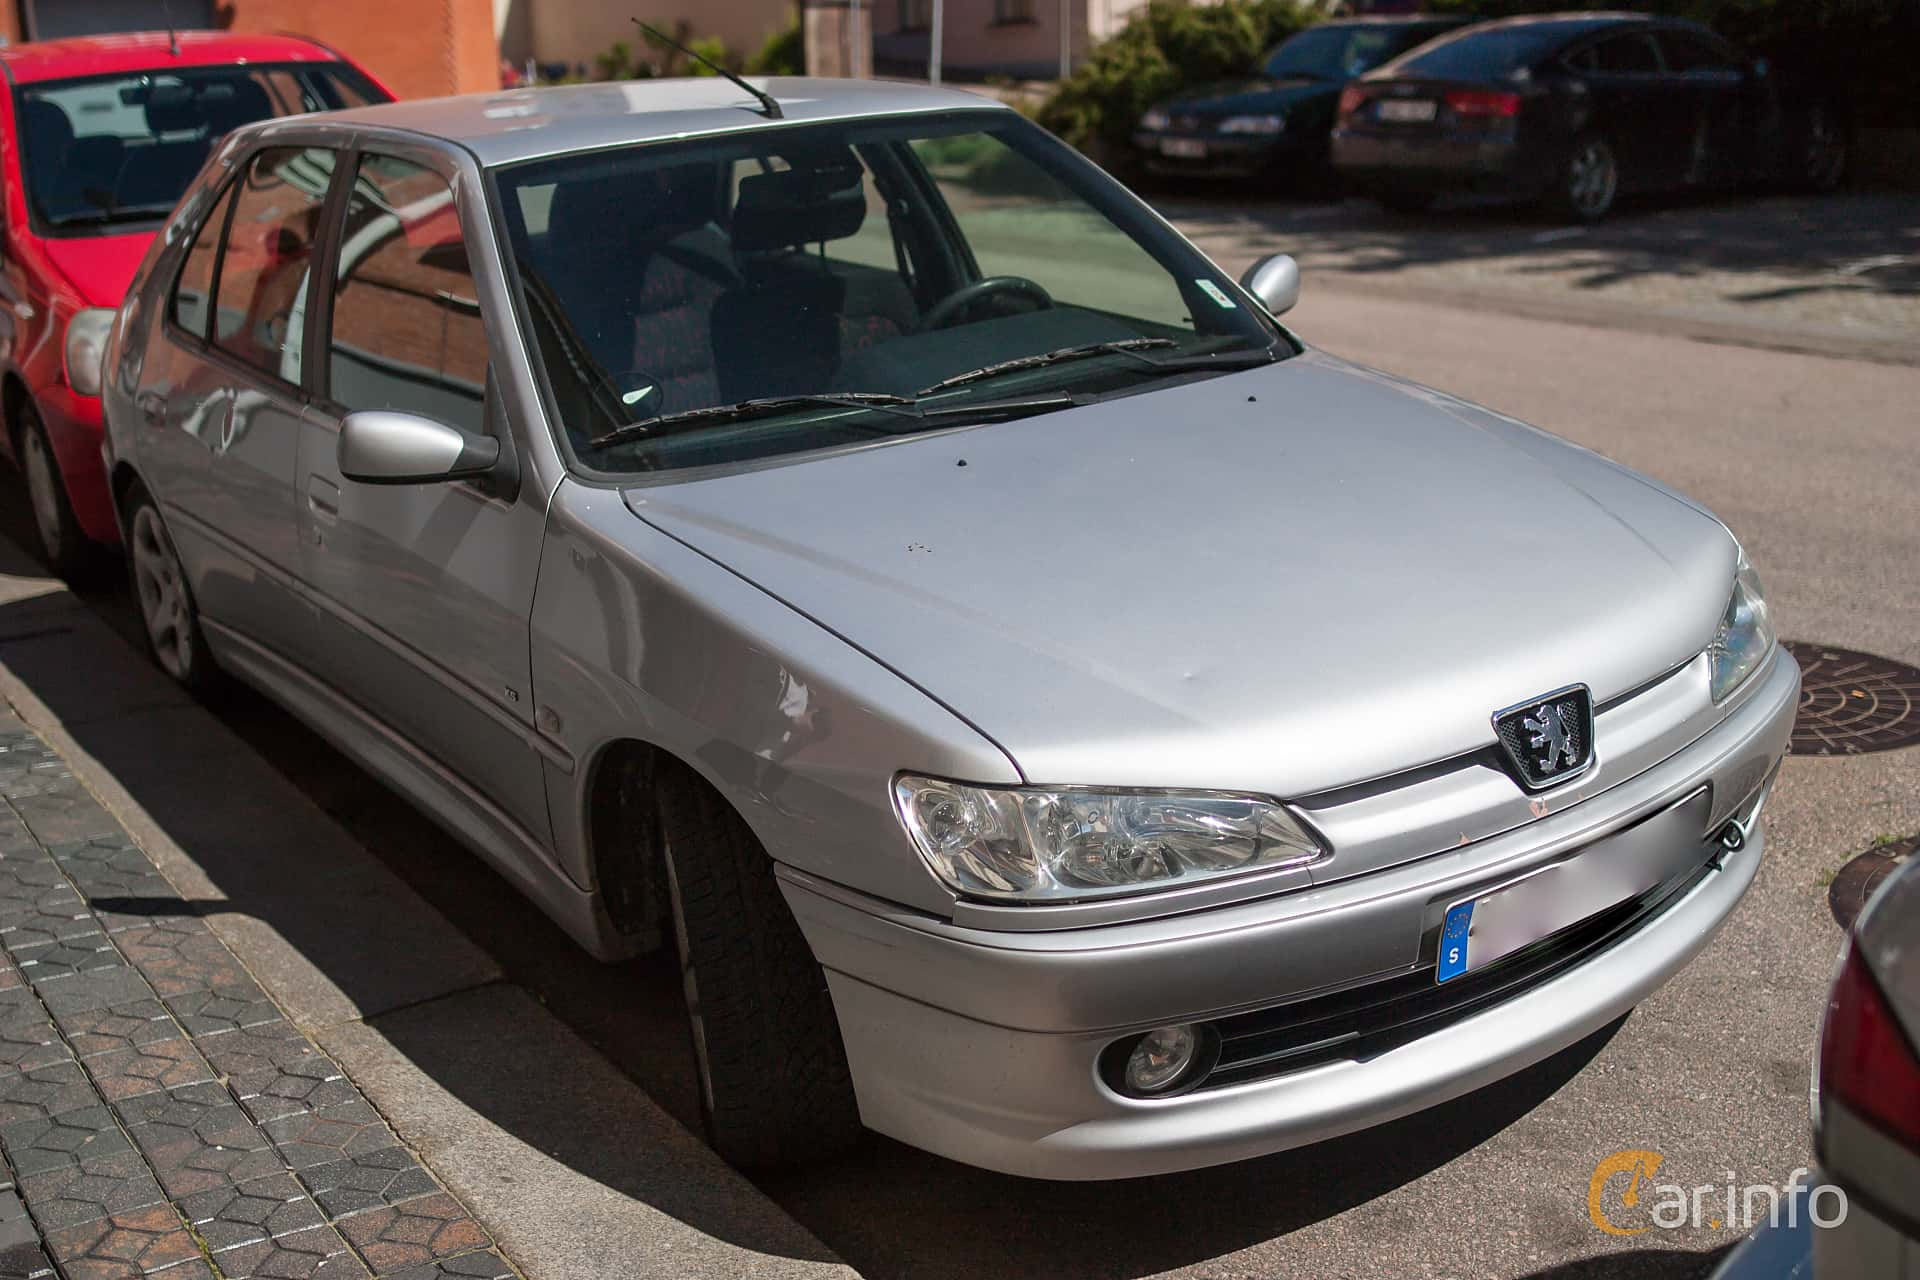 2 images of peugeot 306 5 door 2 0 manual 132hp 2000 by rh car info Peugeot 306 Sedan Peugeot 306 Karavan